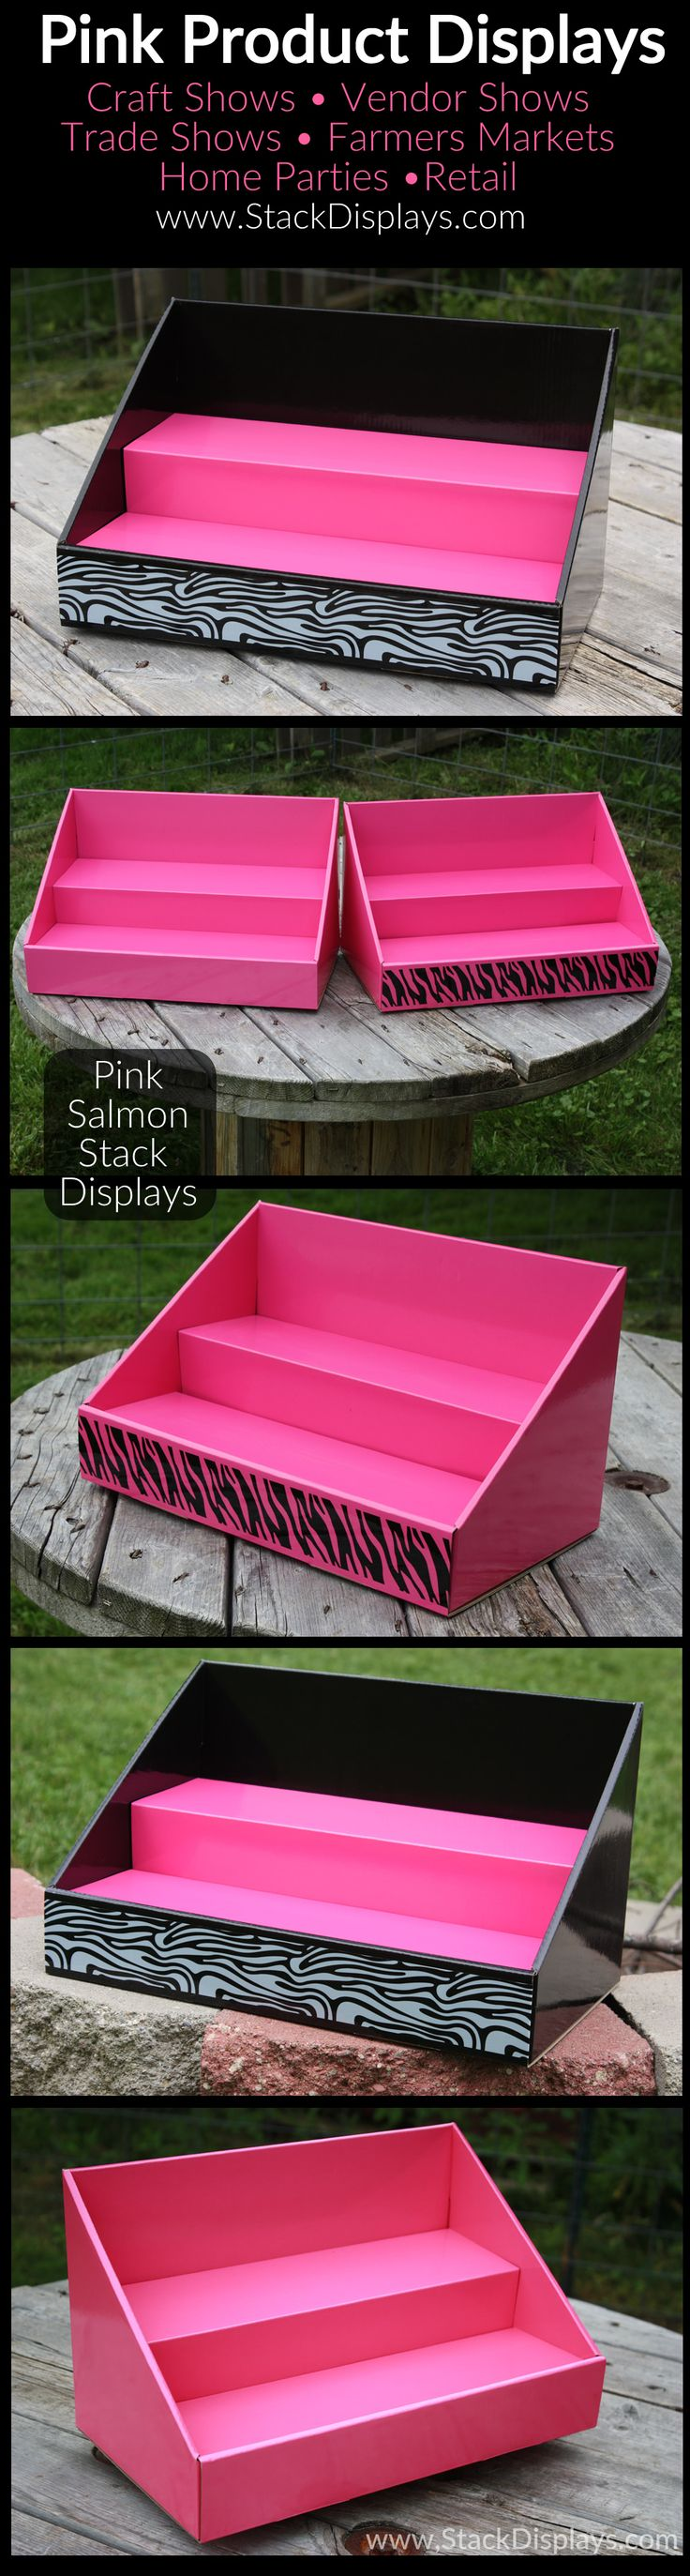 Pink Product Displays for craft shows or craft fairs, vendor events, trade shows or retail displays from Stack Displays